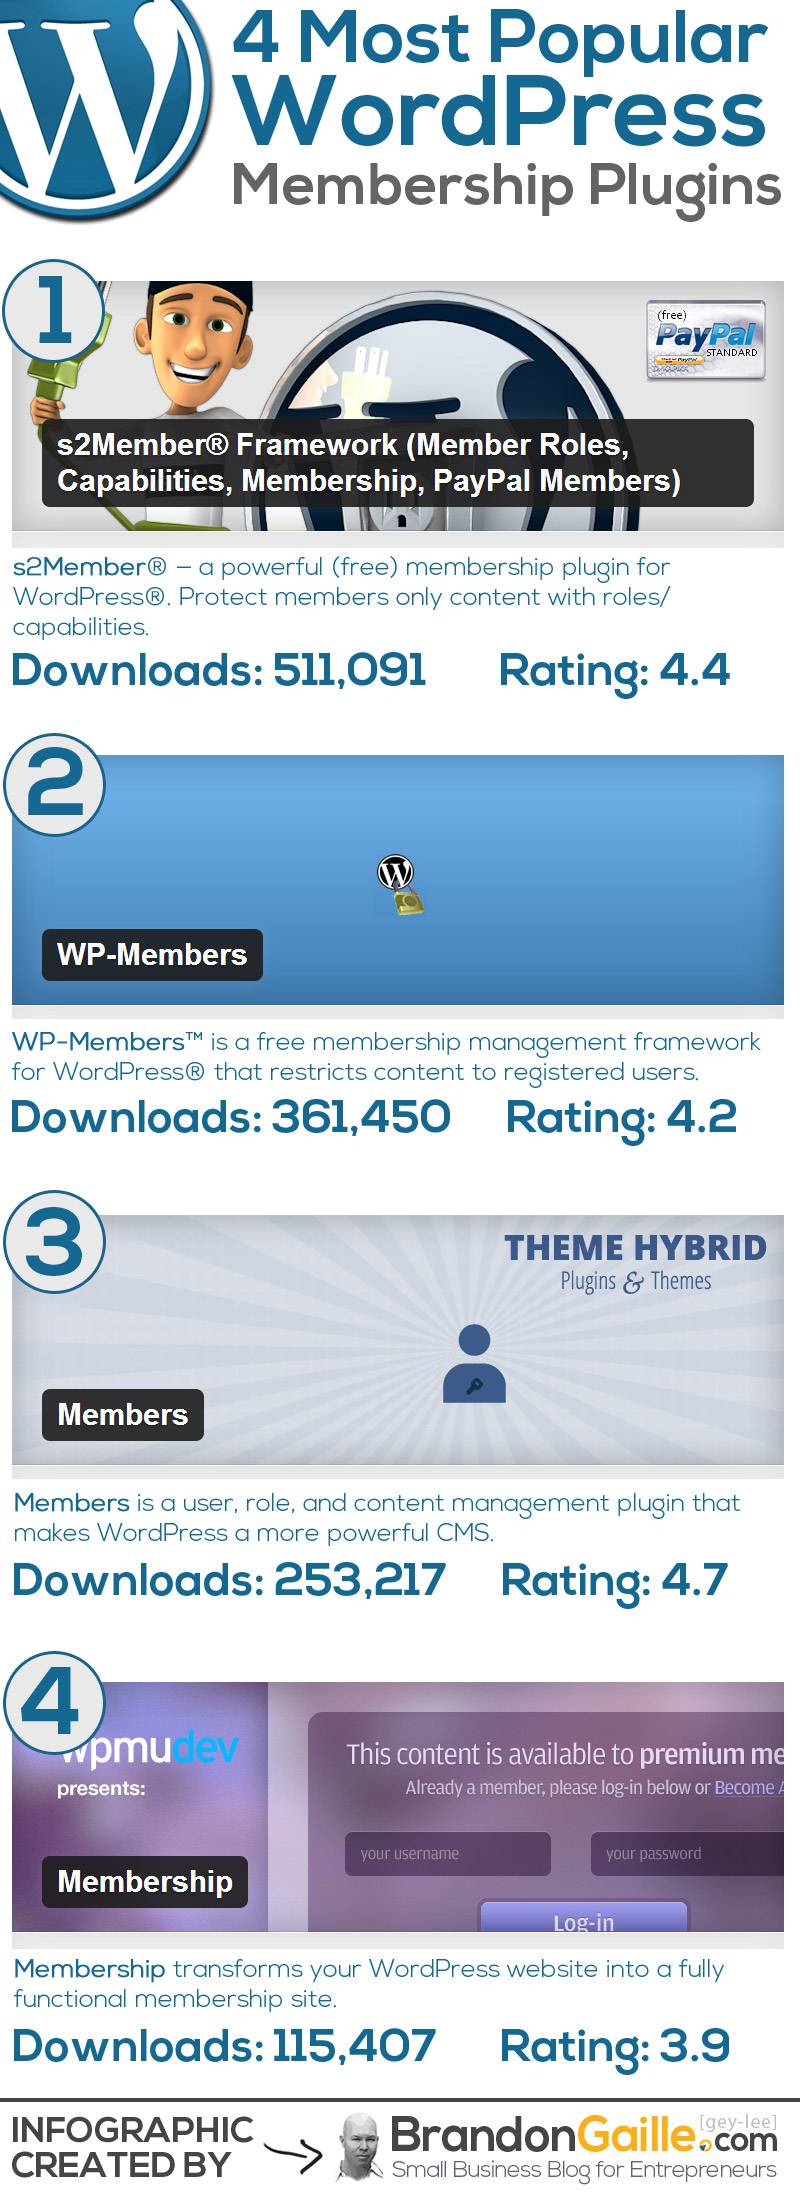 Best-Wordpress-Membership-Plugins-Infographic